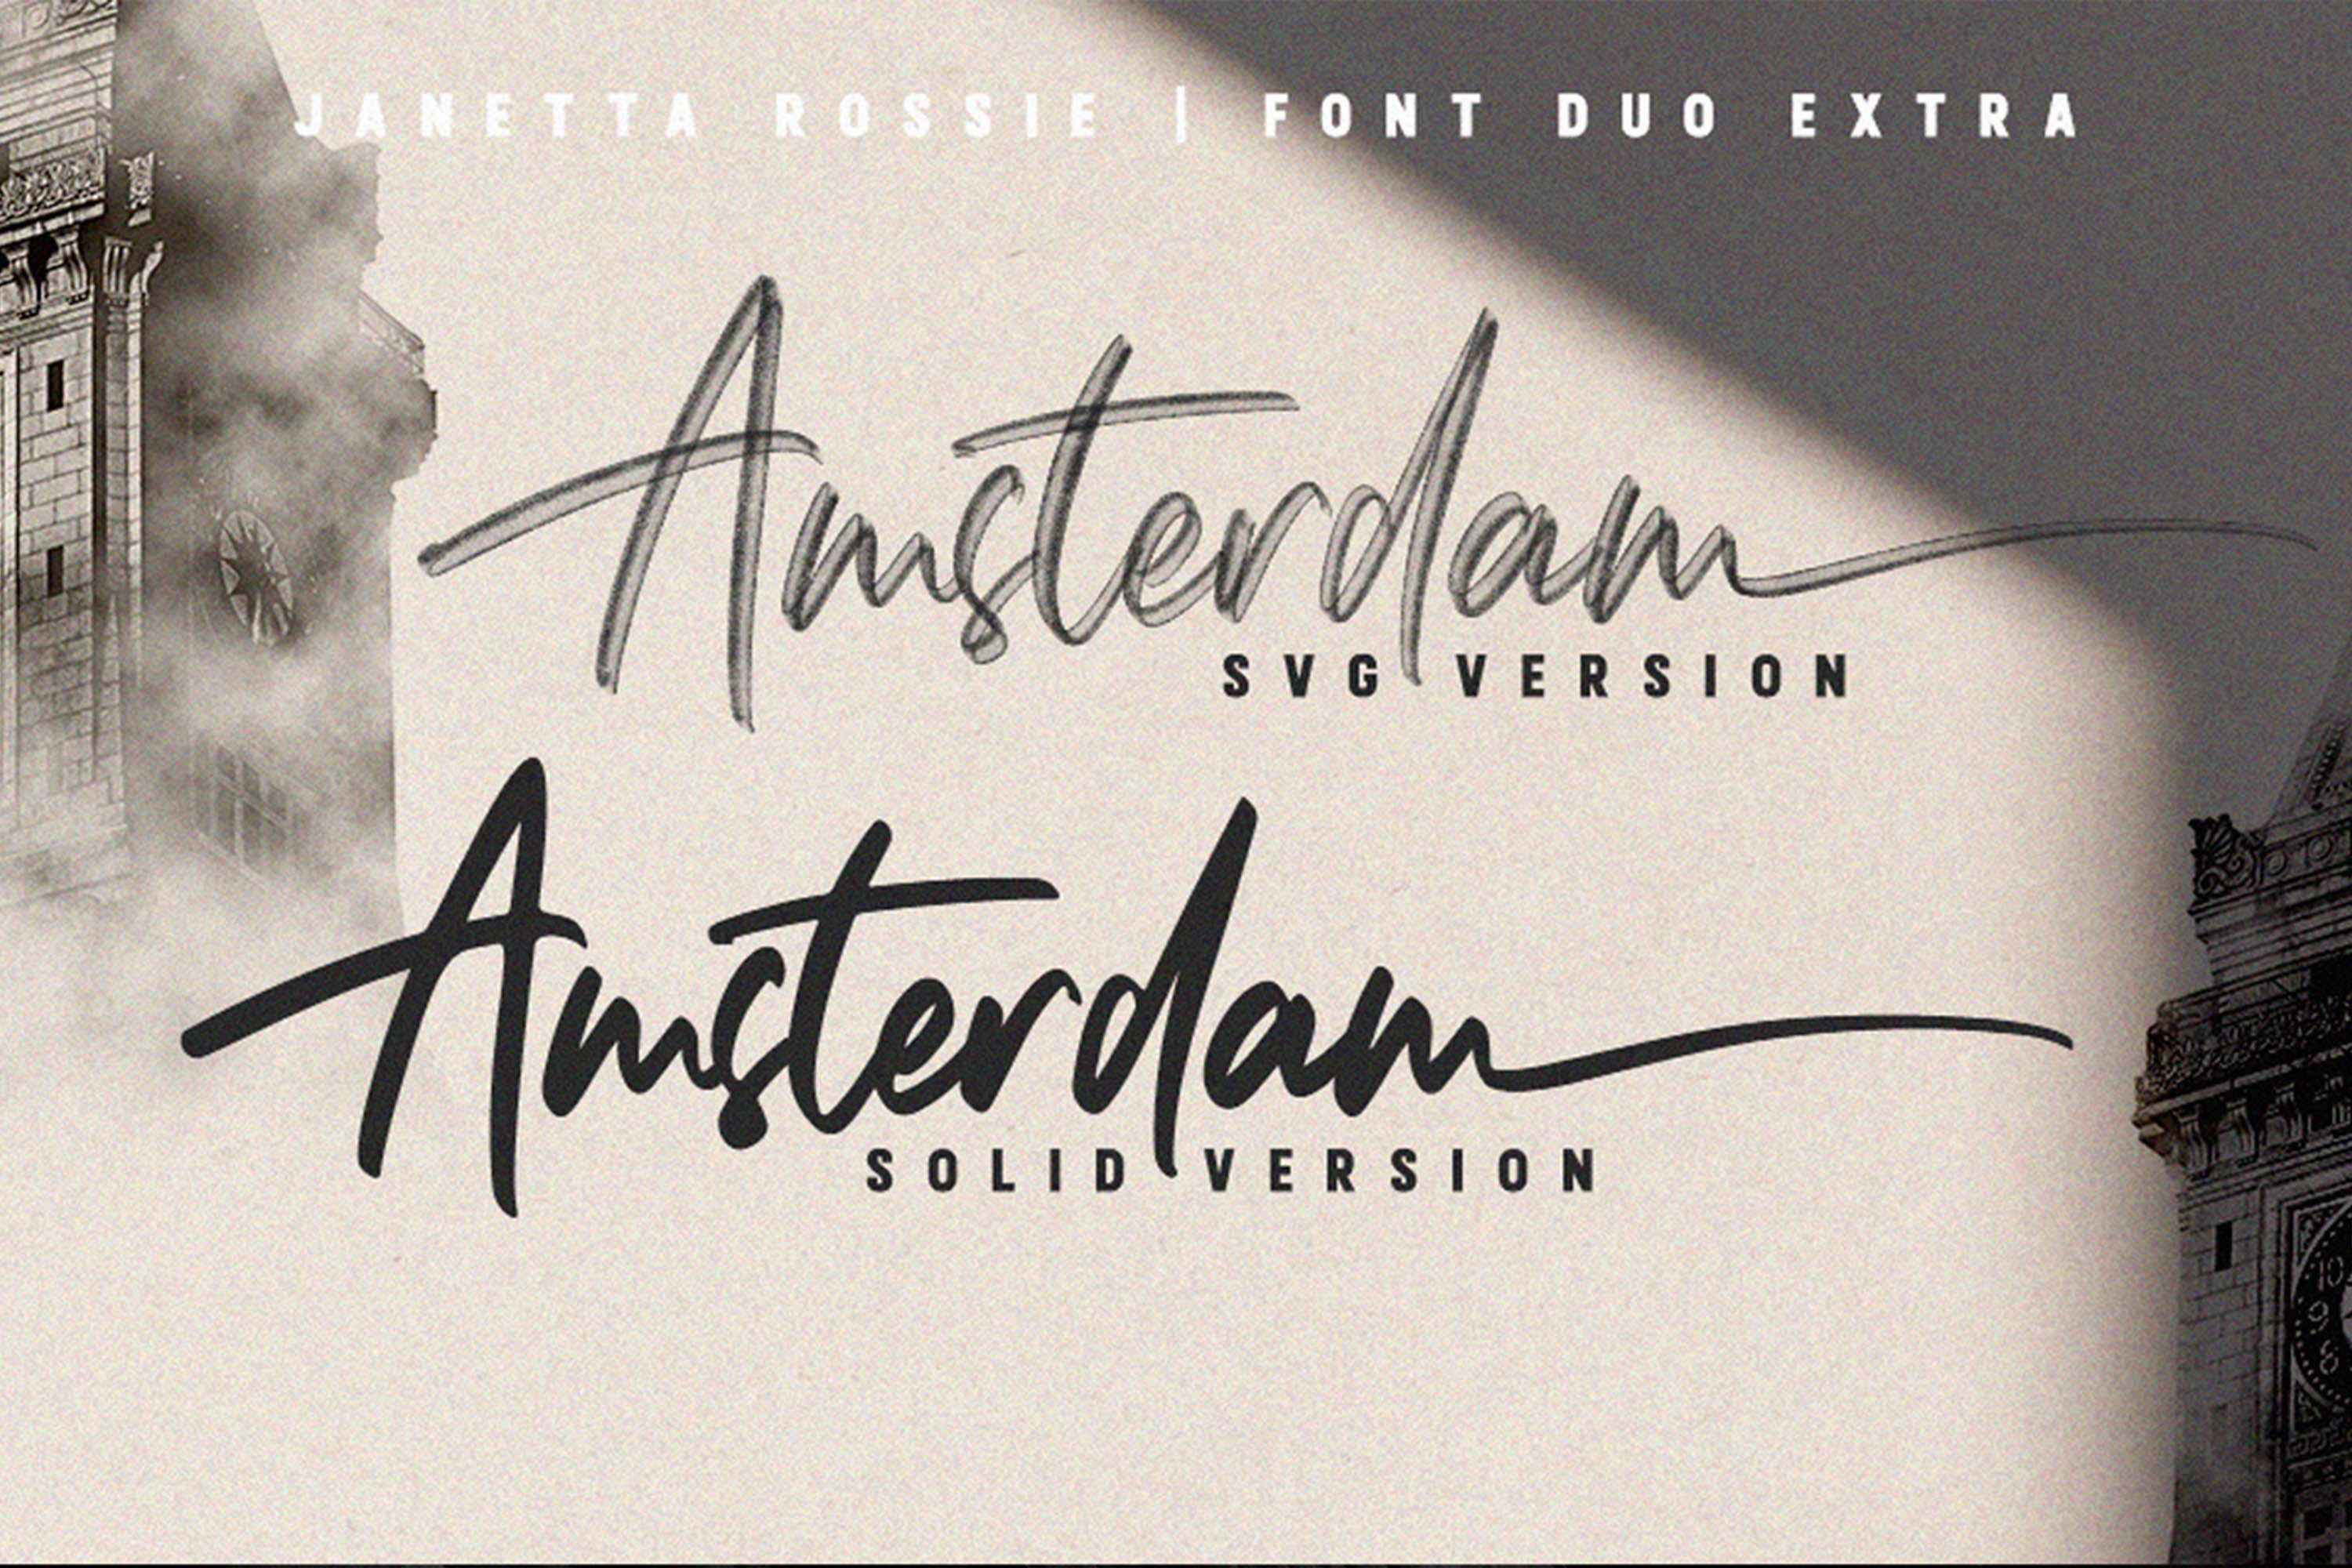 Janetta Rossie | Font Duo SVG extra example image 10